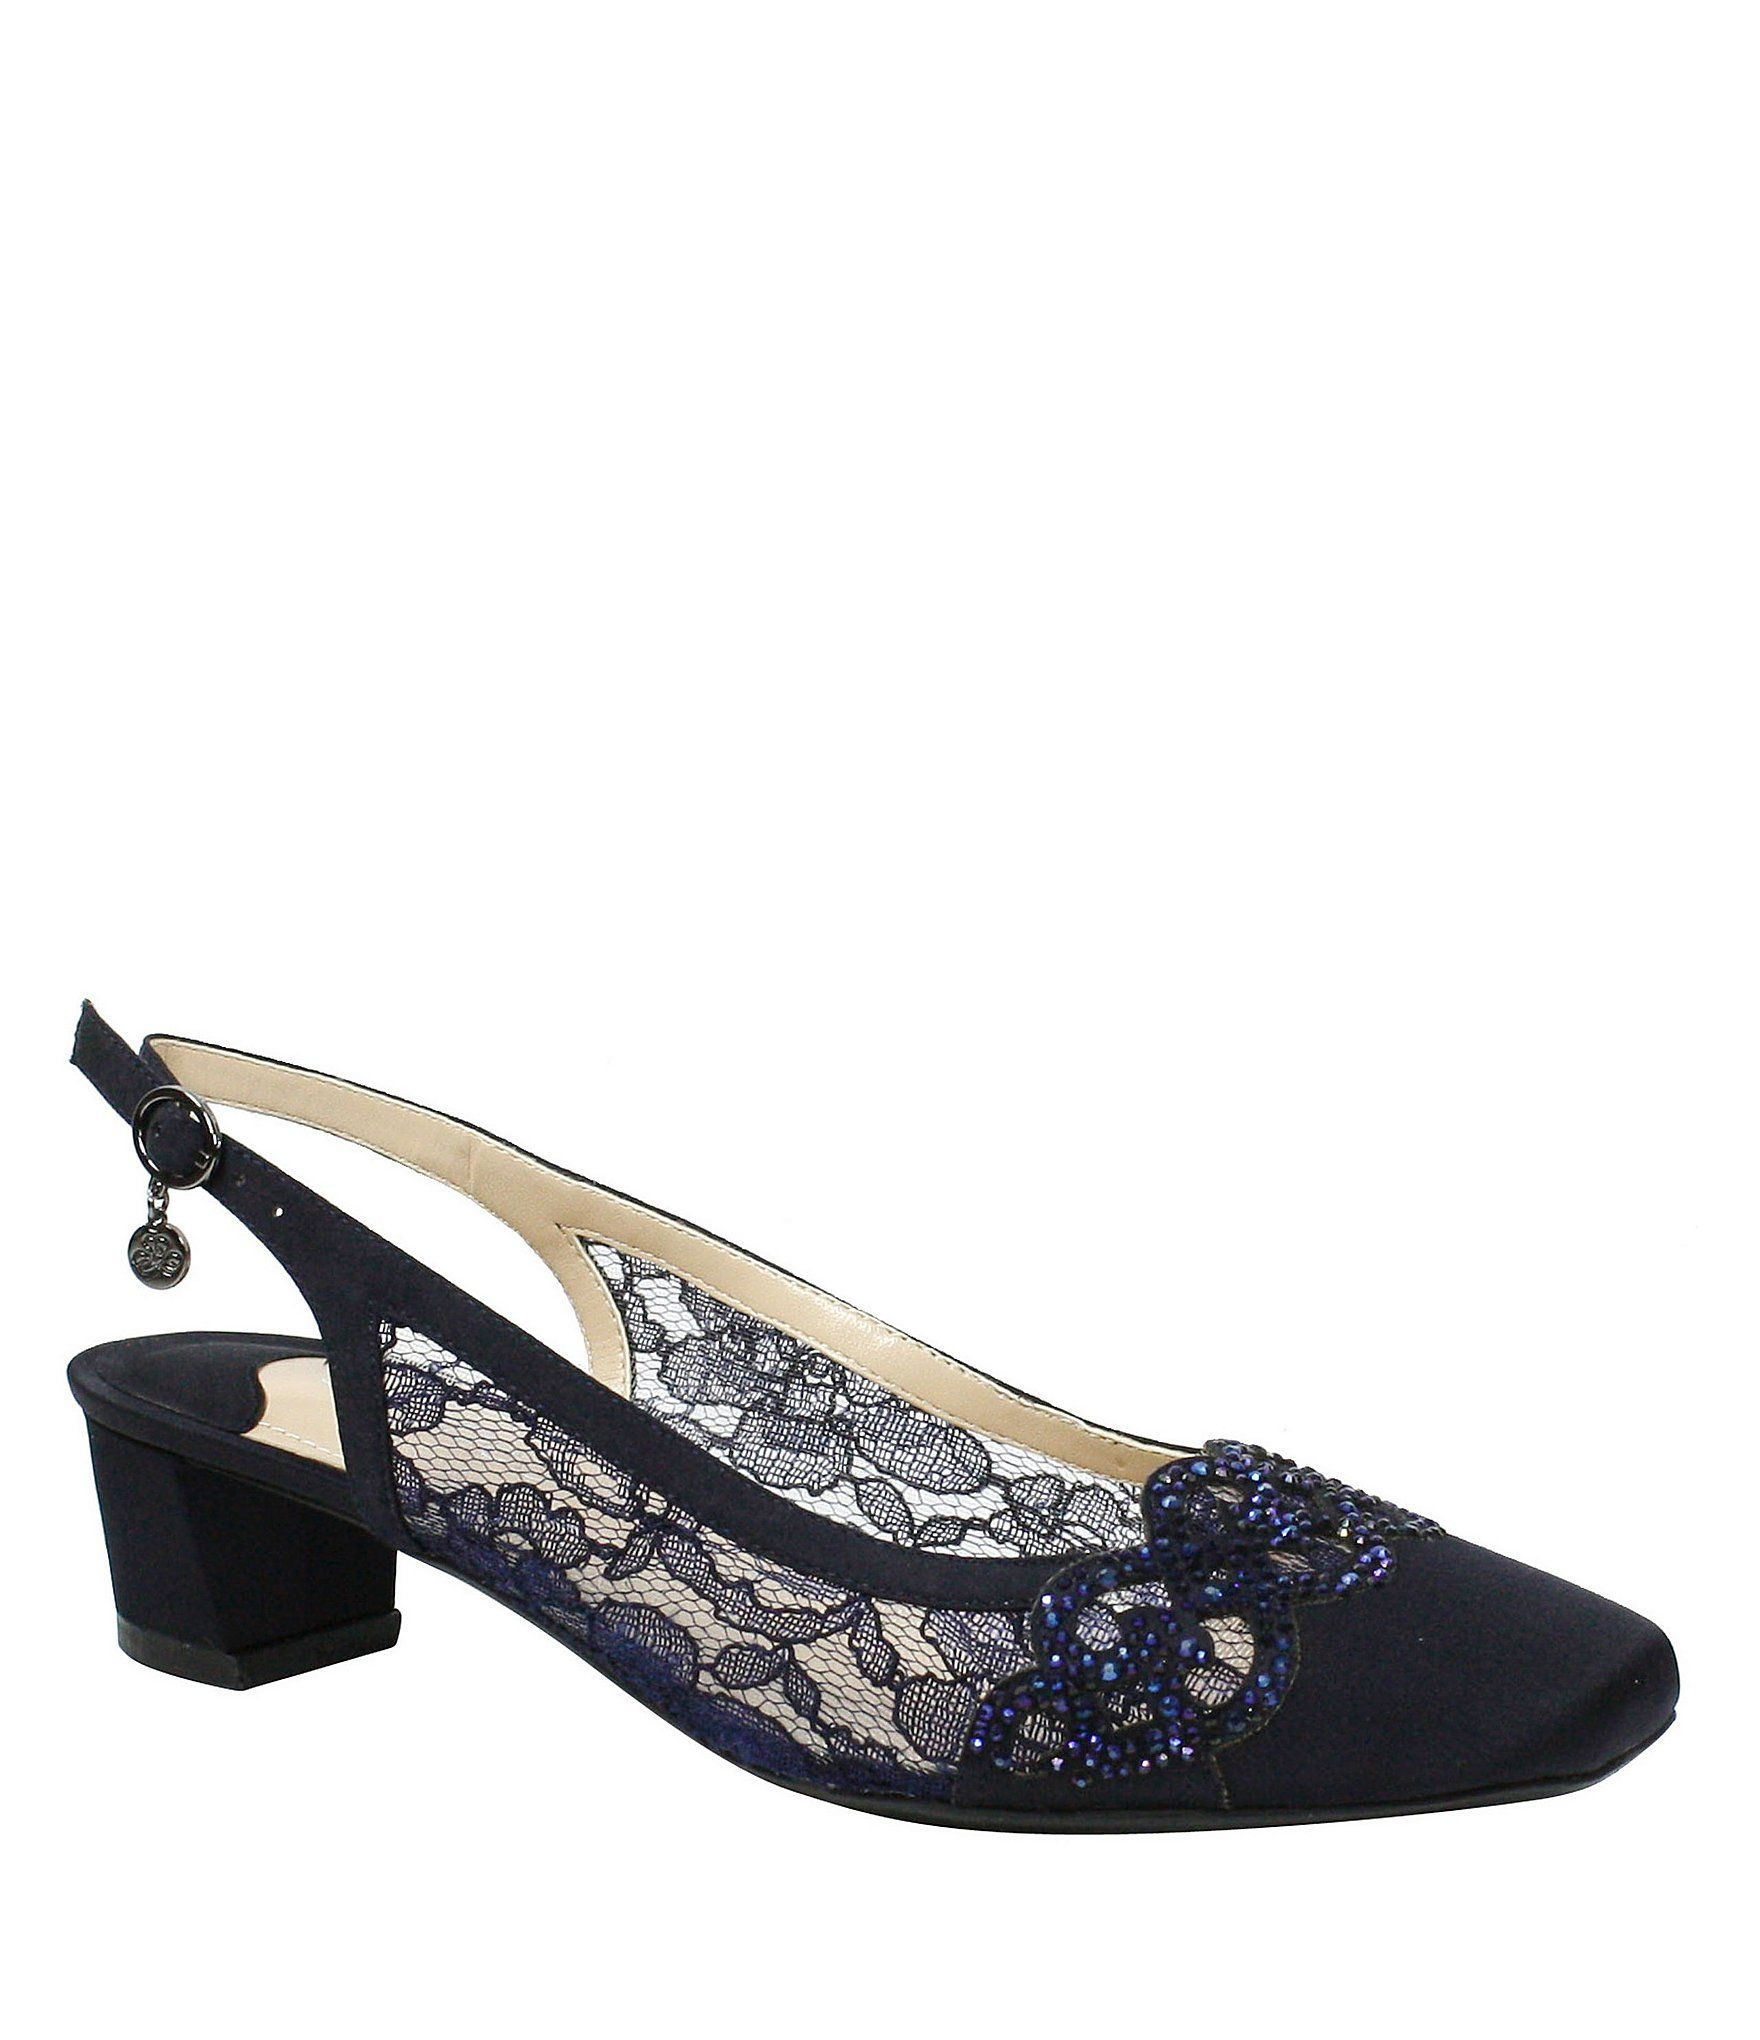 J. Renee Faleece Lace and Satin Slingback Block Heel Pumps 6lKqWRMKI